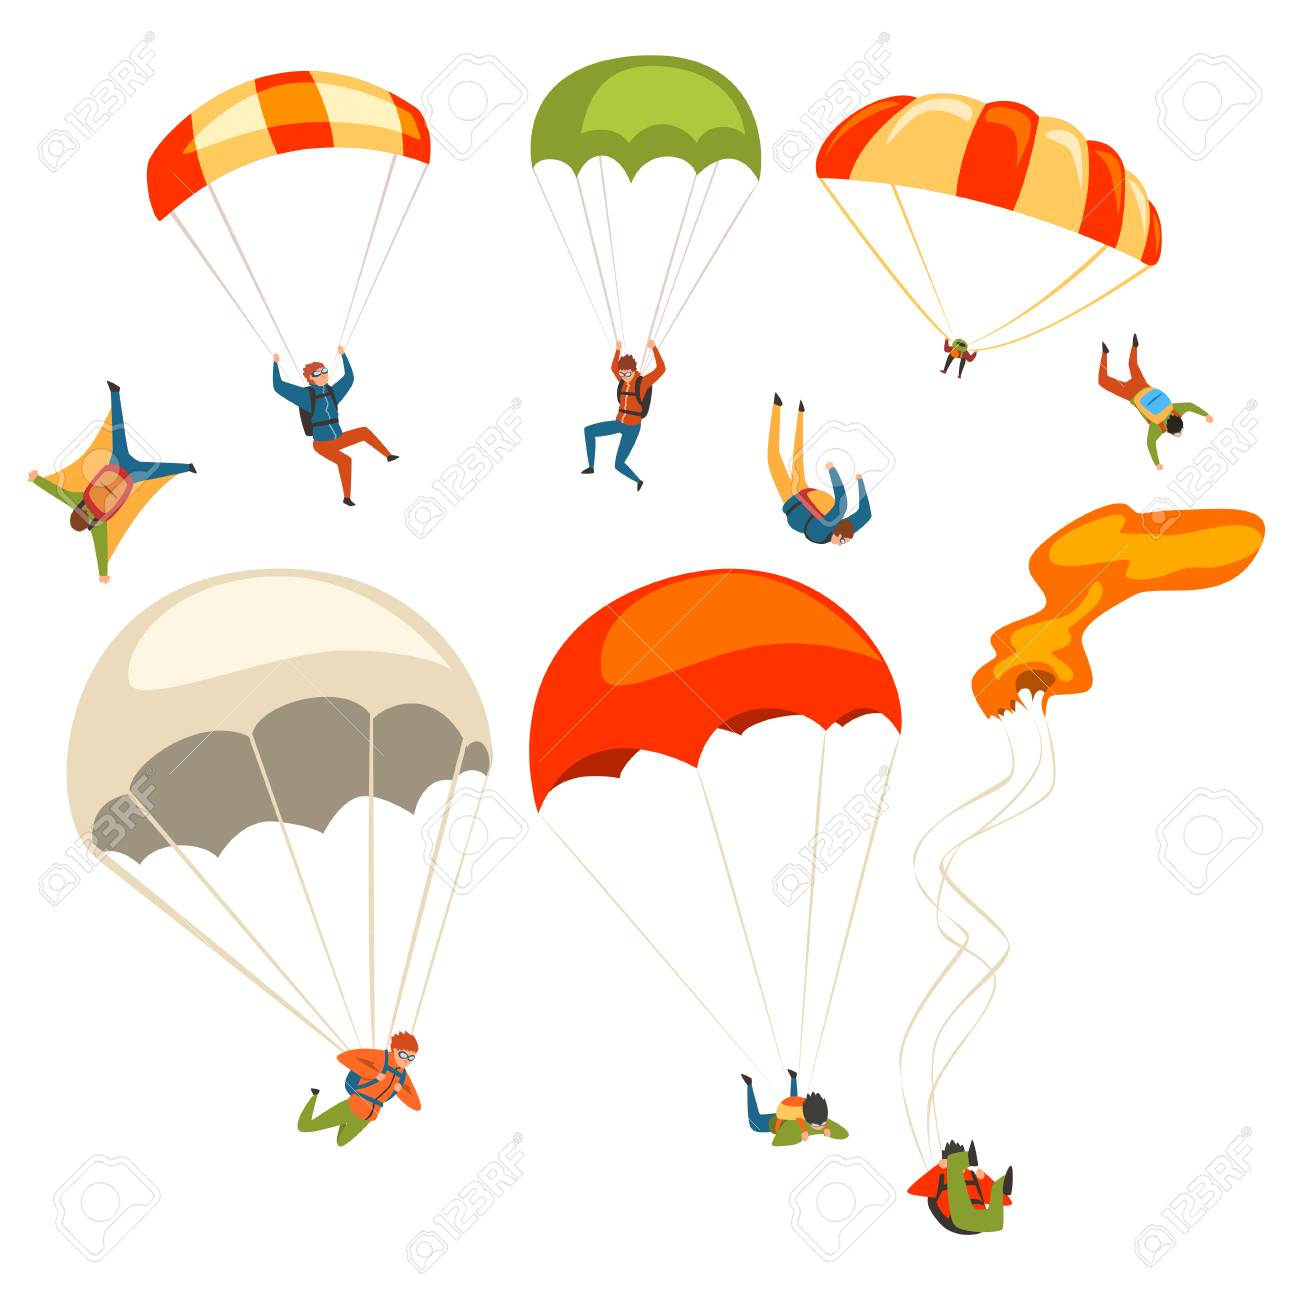 Skydivers flying with parachutes set, extreme parachuting sport and skydiving concept vector Illustrations on a white background - 104333600